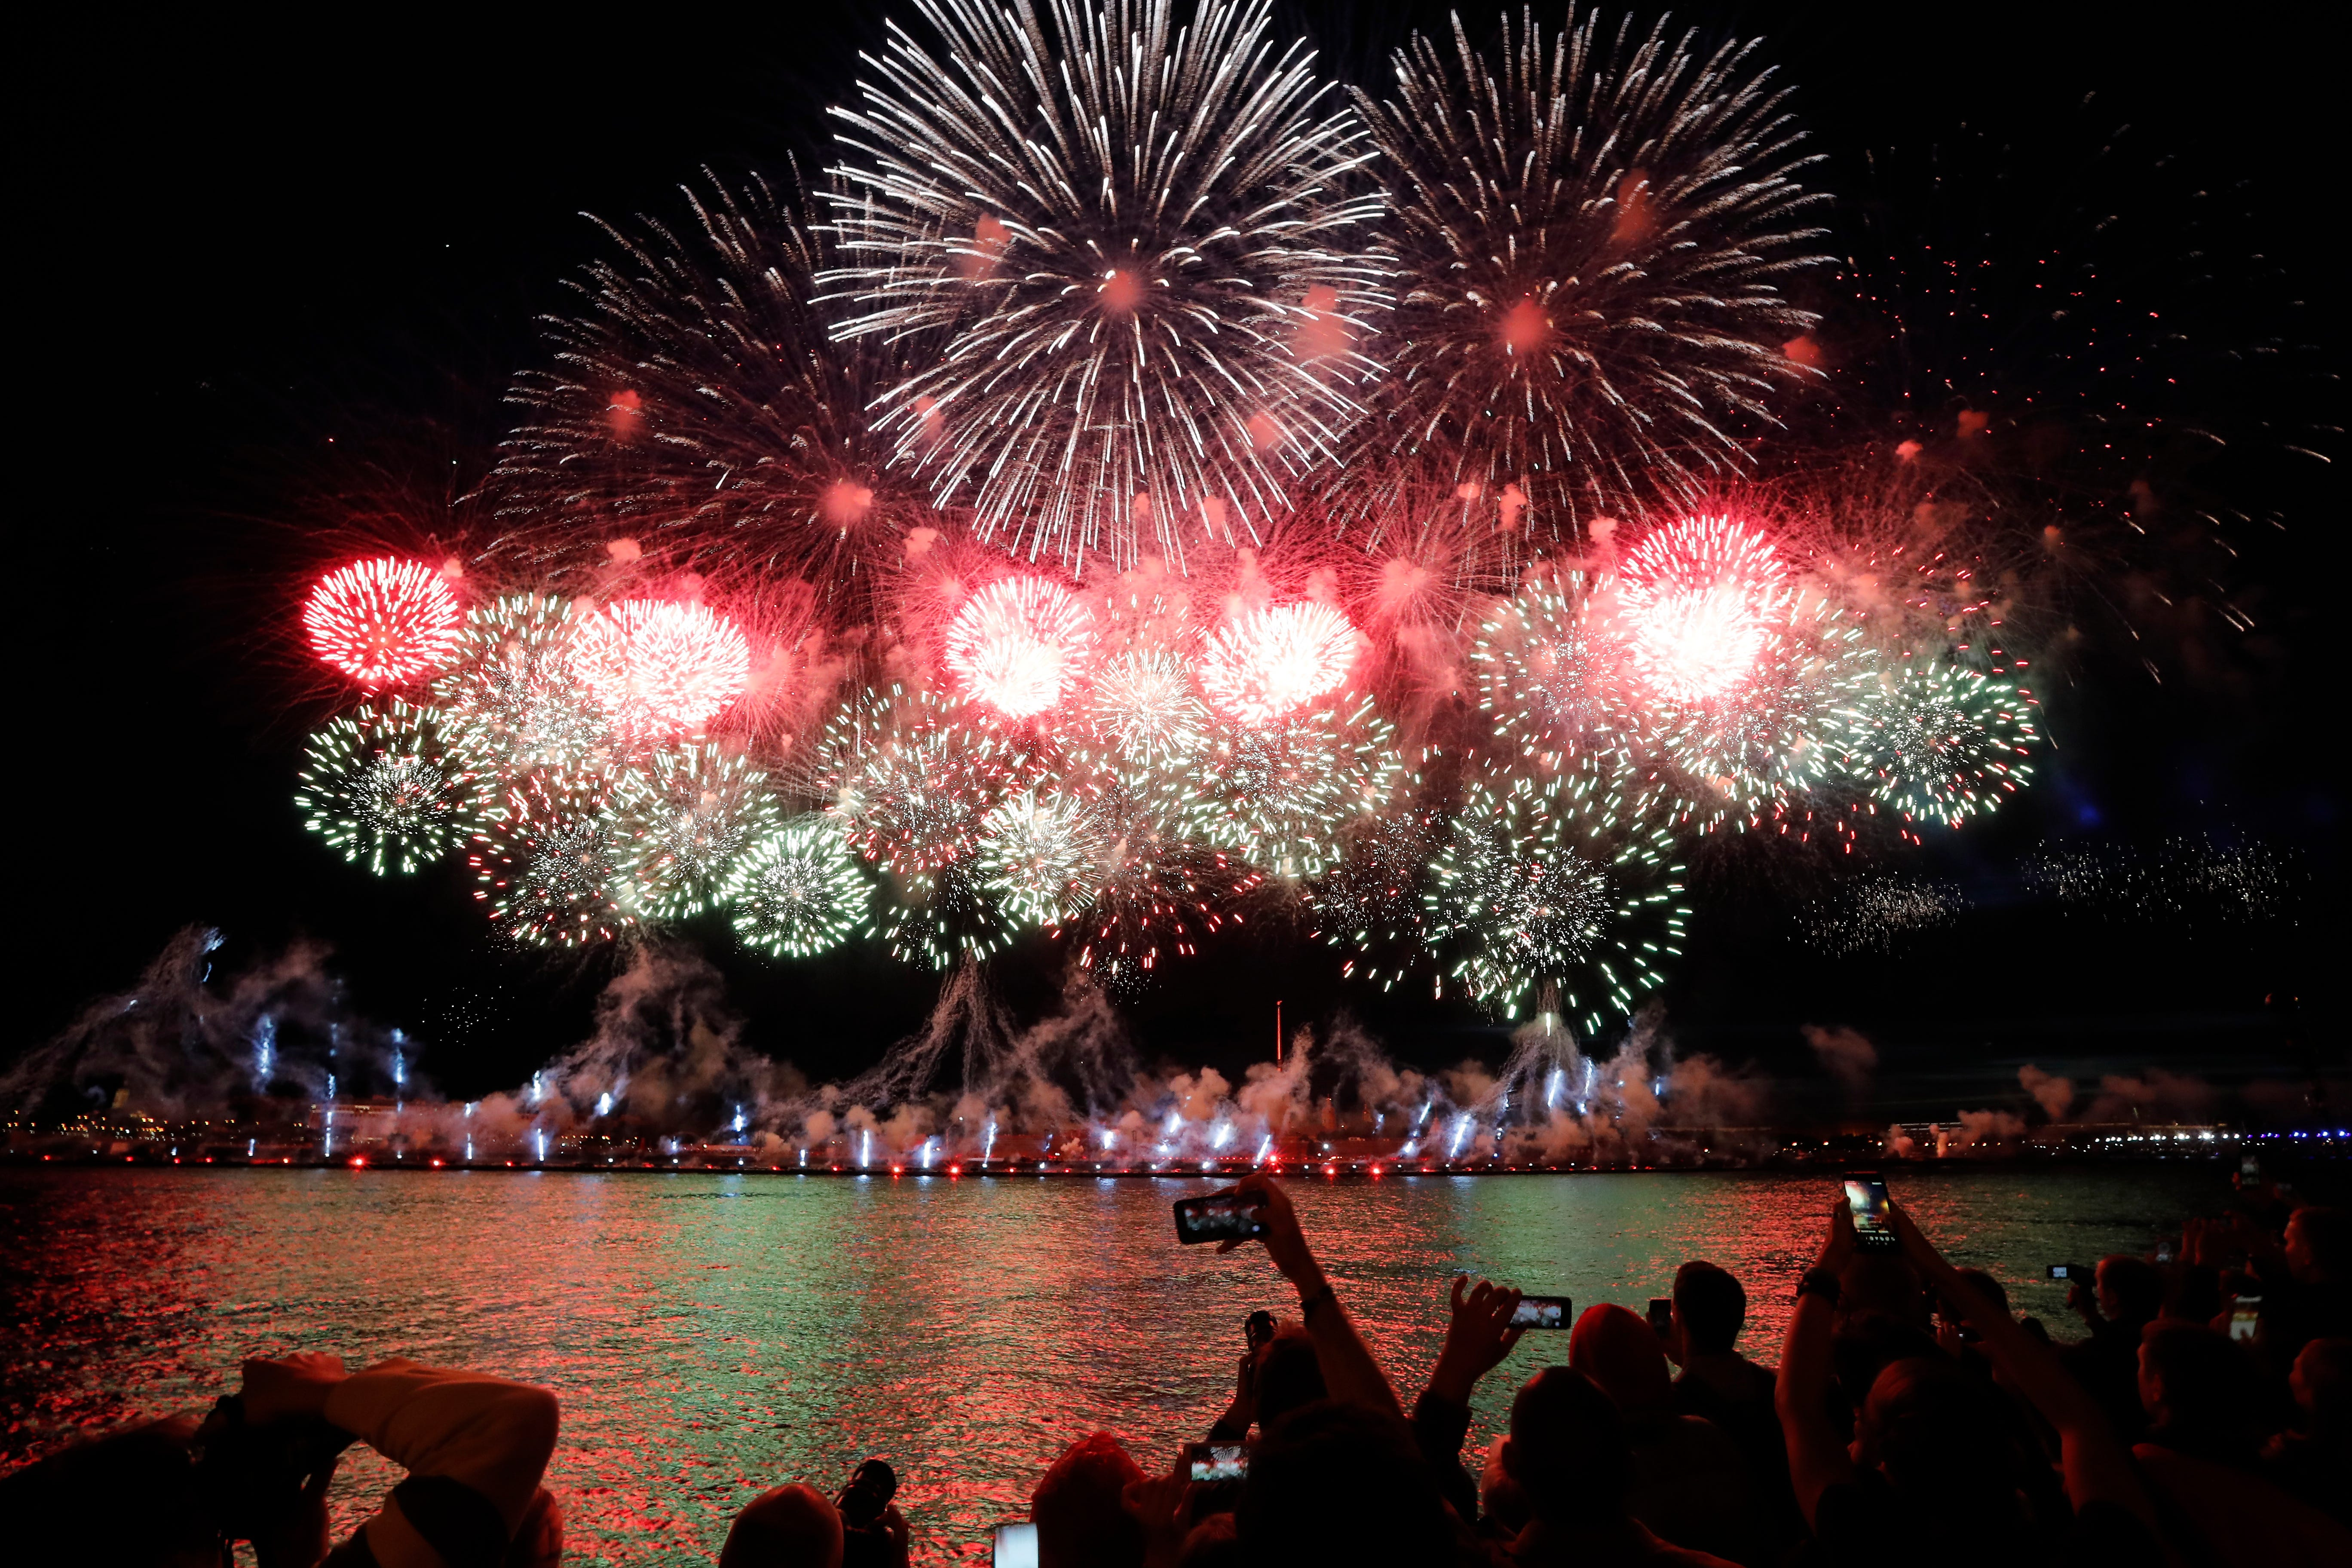 Fireworks sales to top $1.3 billion this year